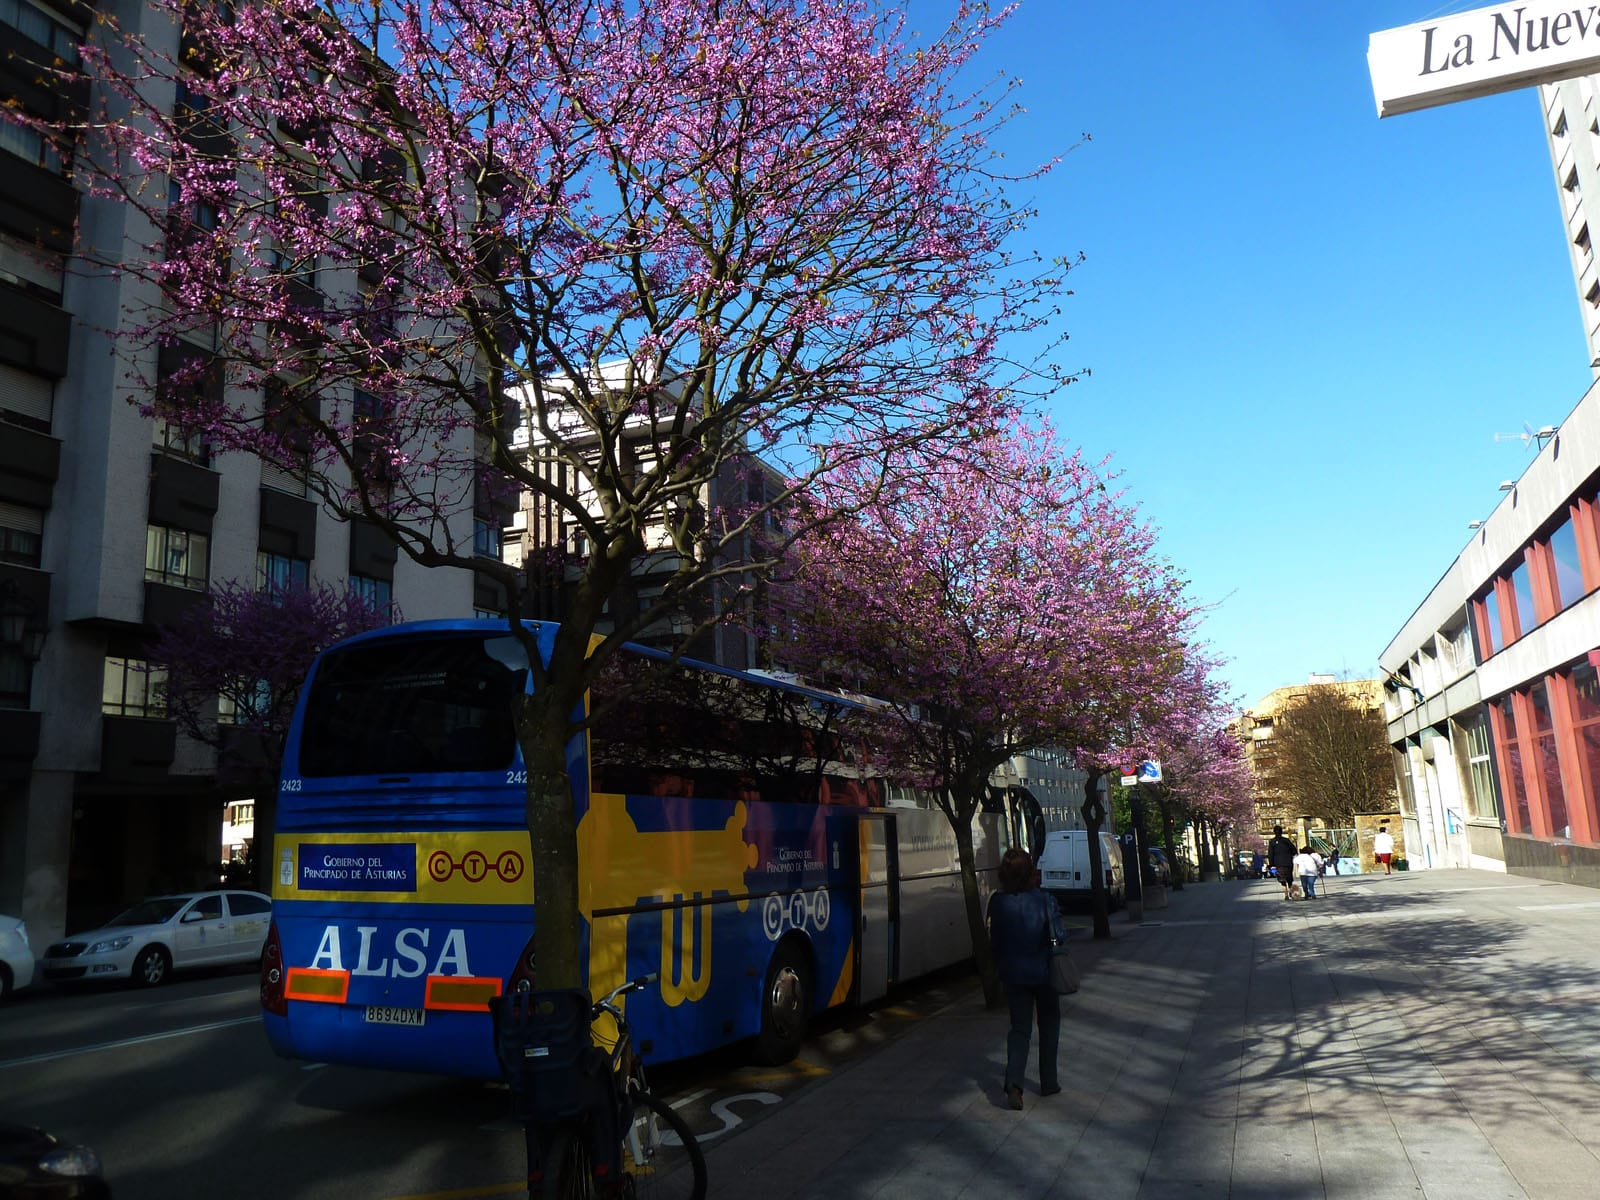 Coach buses are another good option for Spain transportation